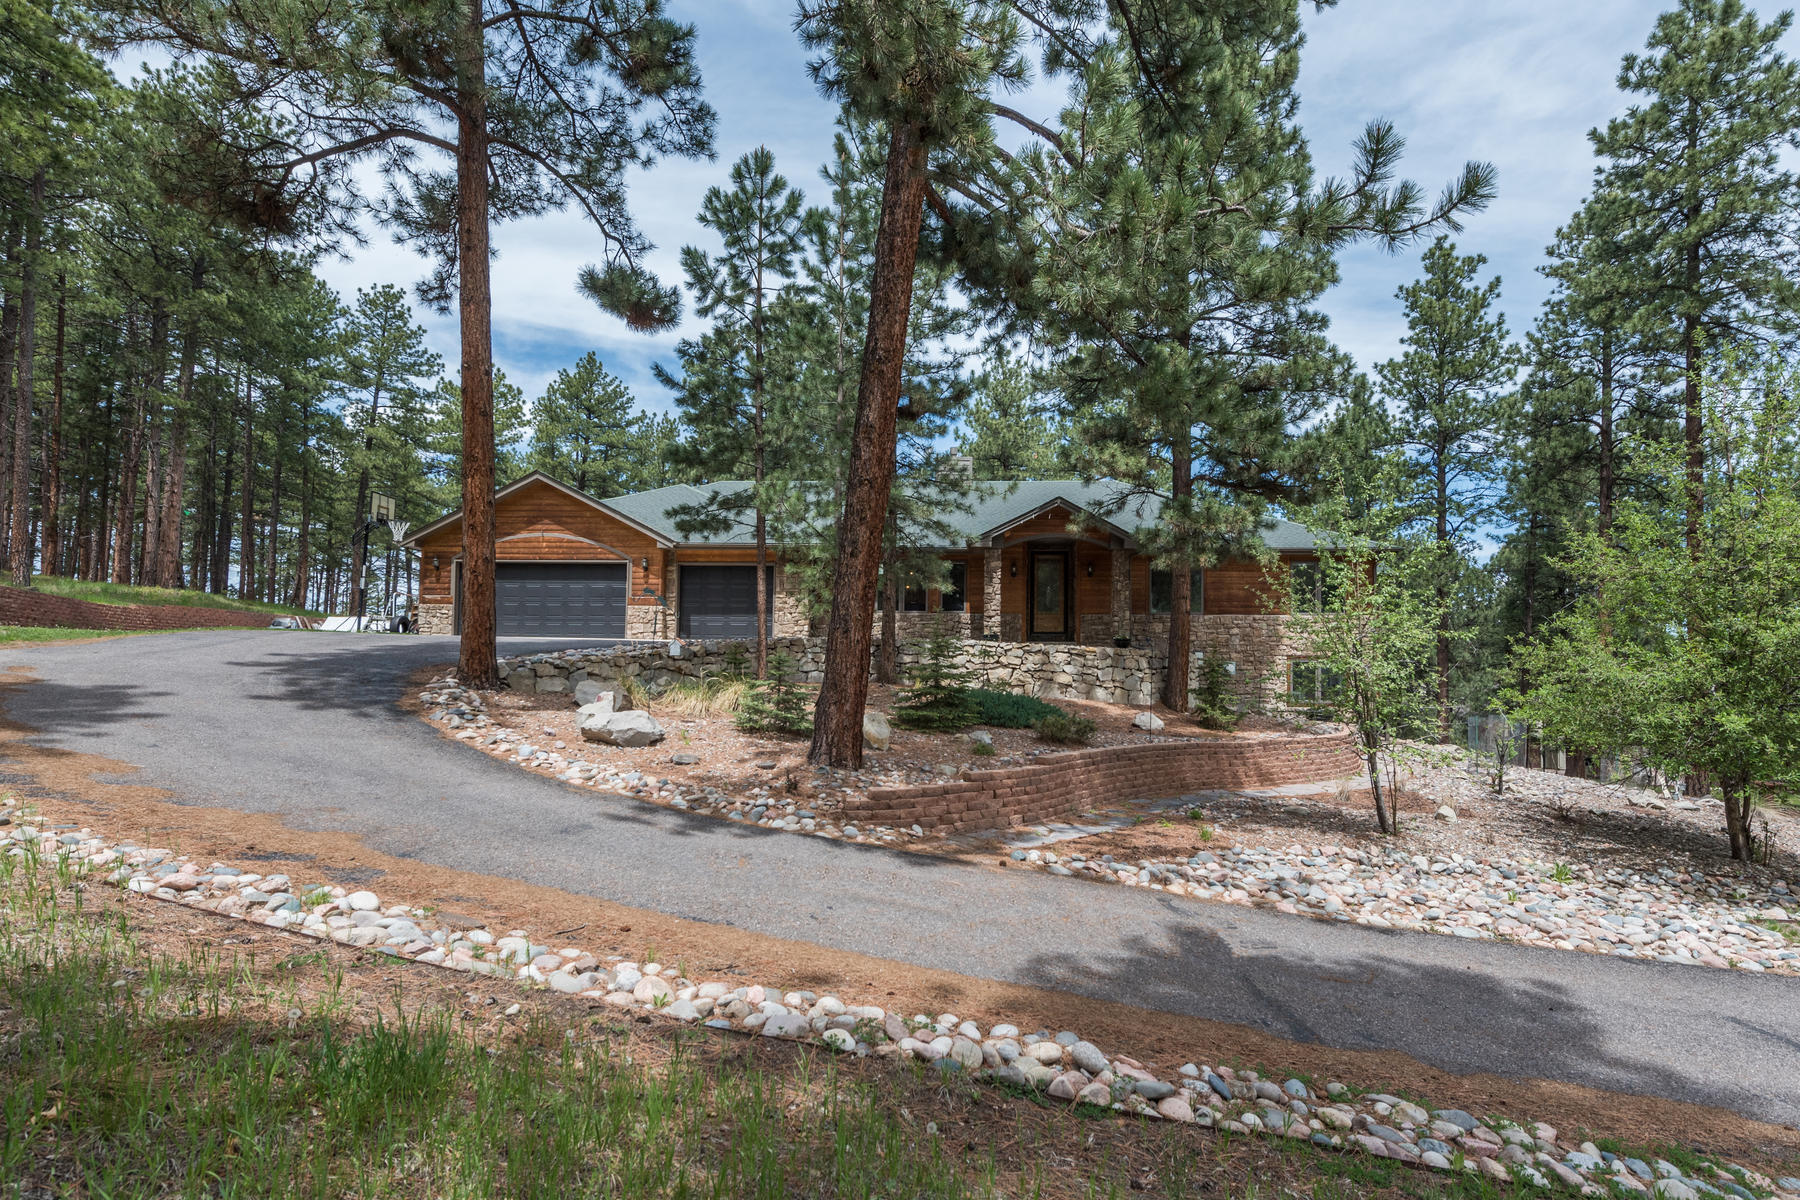 Single Family Home for Active at Tranquility in the Forest 7597 Molas Ct Larkspur, Colorado 80118 United States